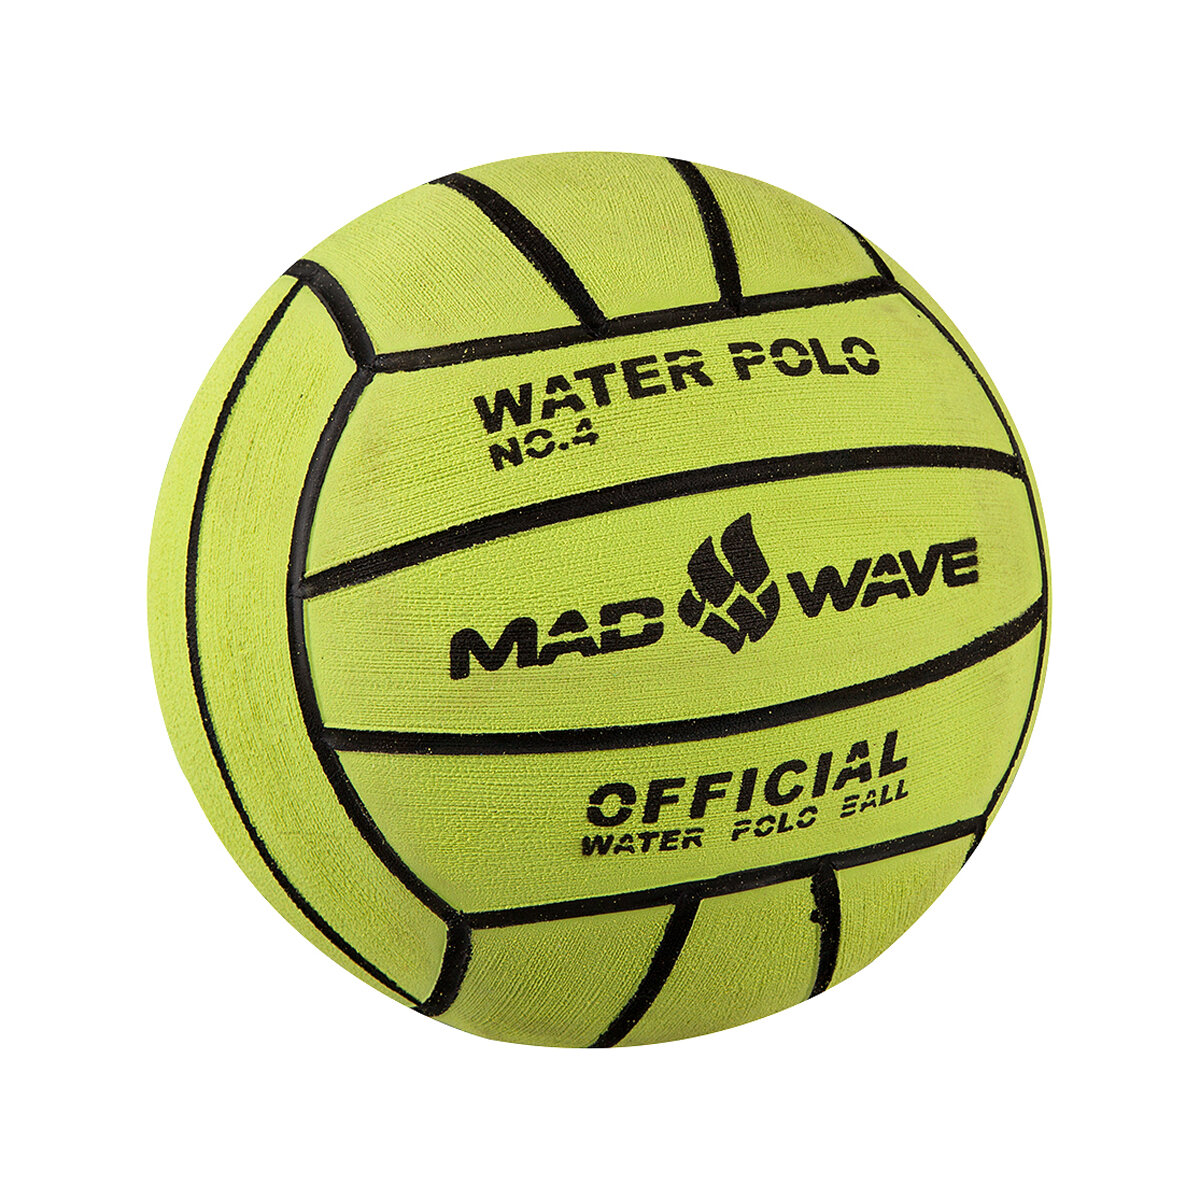 Мяч для водного поло Mad Wave Water Polo Ball Official size Weight 4